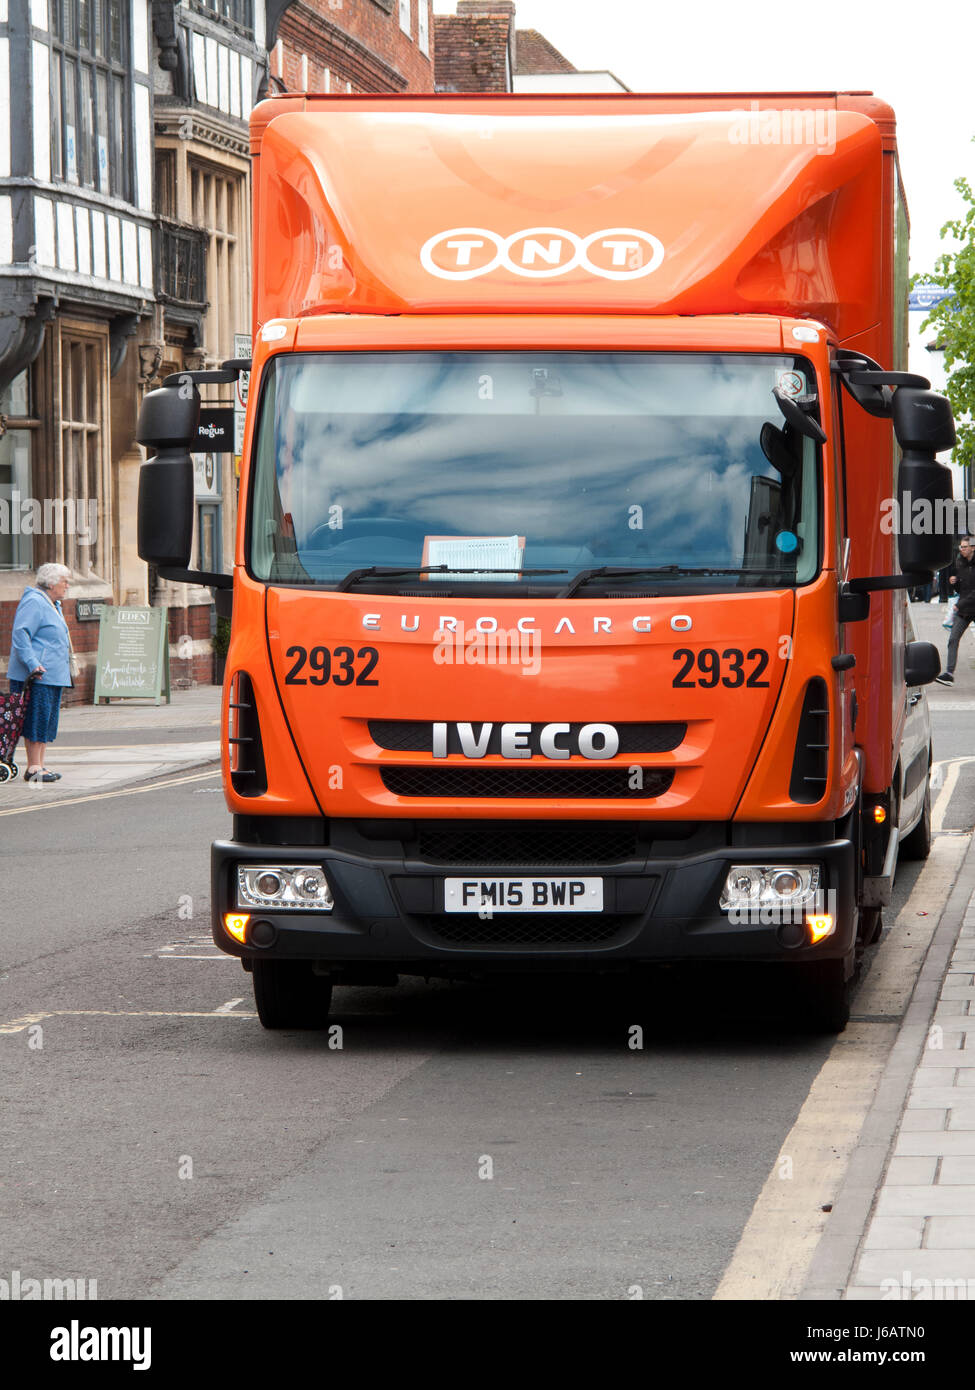 654a3bdc5c307a TNT Express lorry parked in street making delivery or collection